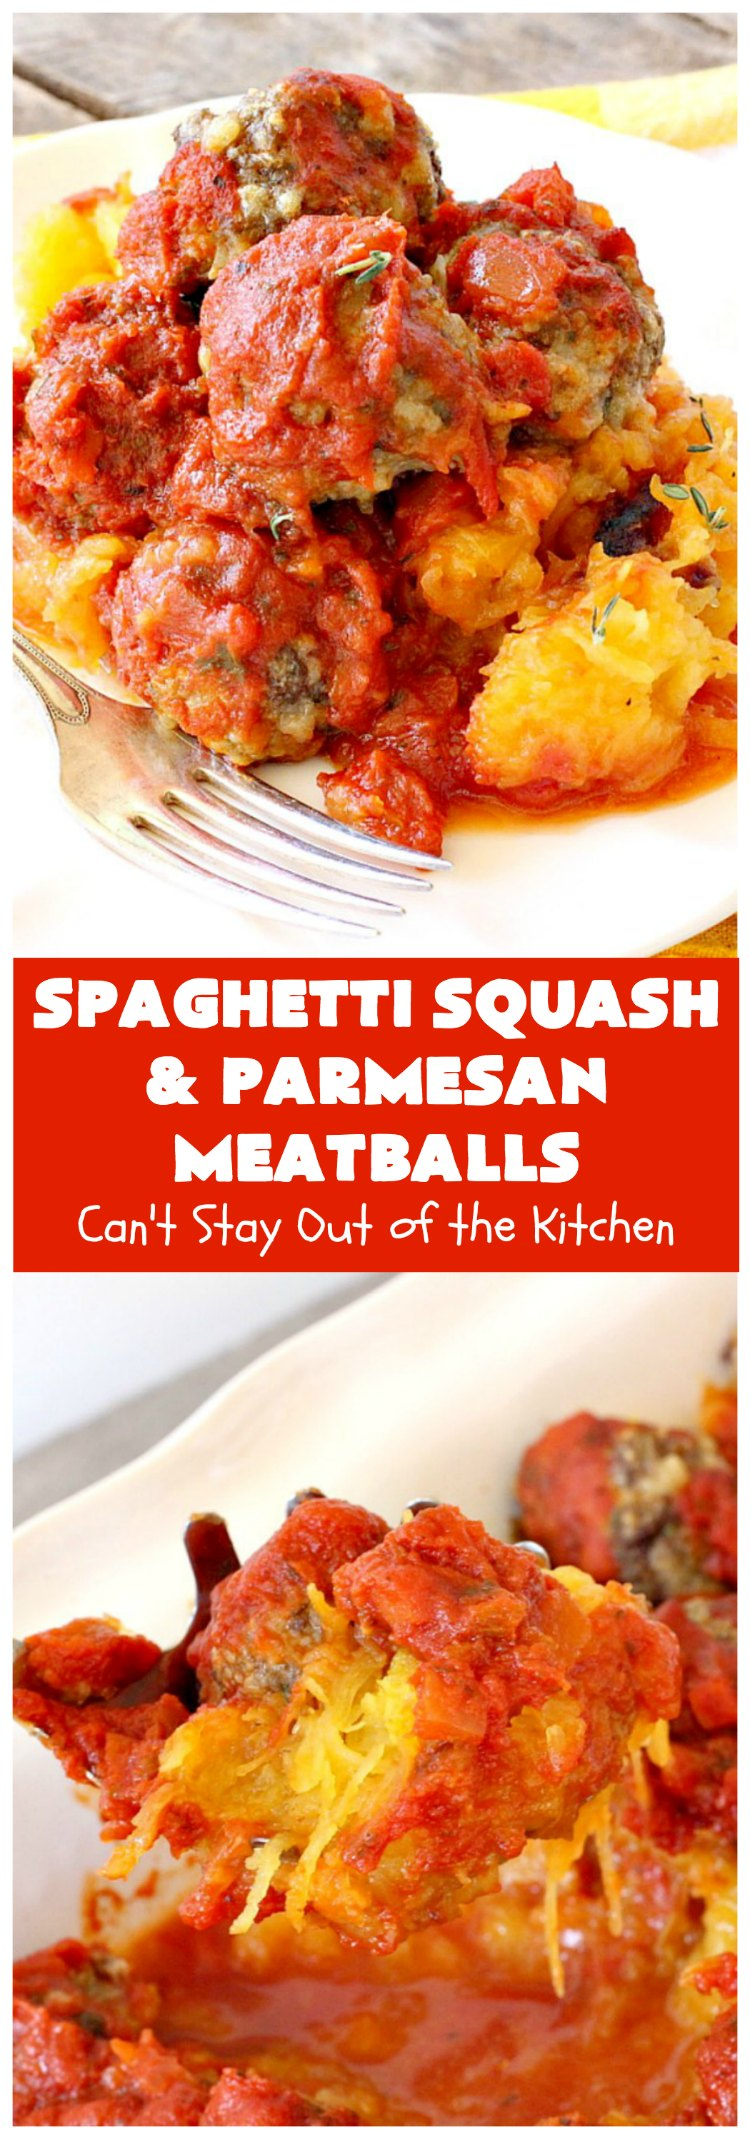 Spaghetti Squash and Parmesan Meatballs | Can't Stay Out of the Kitchen | fantastic #healthy & #LowCalorie #casserole with #SpaghettisSquash instead of pasta. Uses #spaghetti sauce & homemade #GlutenFree #meatballs with #ParmesanCheese. Easy & delicious. #beef #GroundBeef #SpaghettiSquashAndParmesanMeatballs